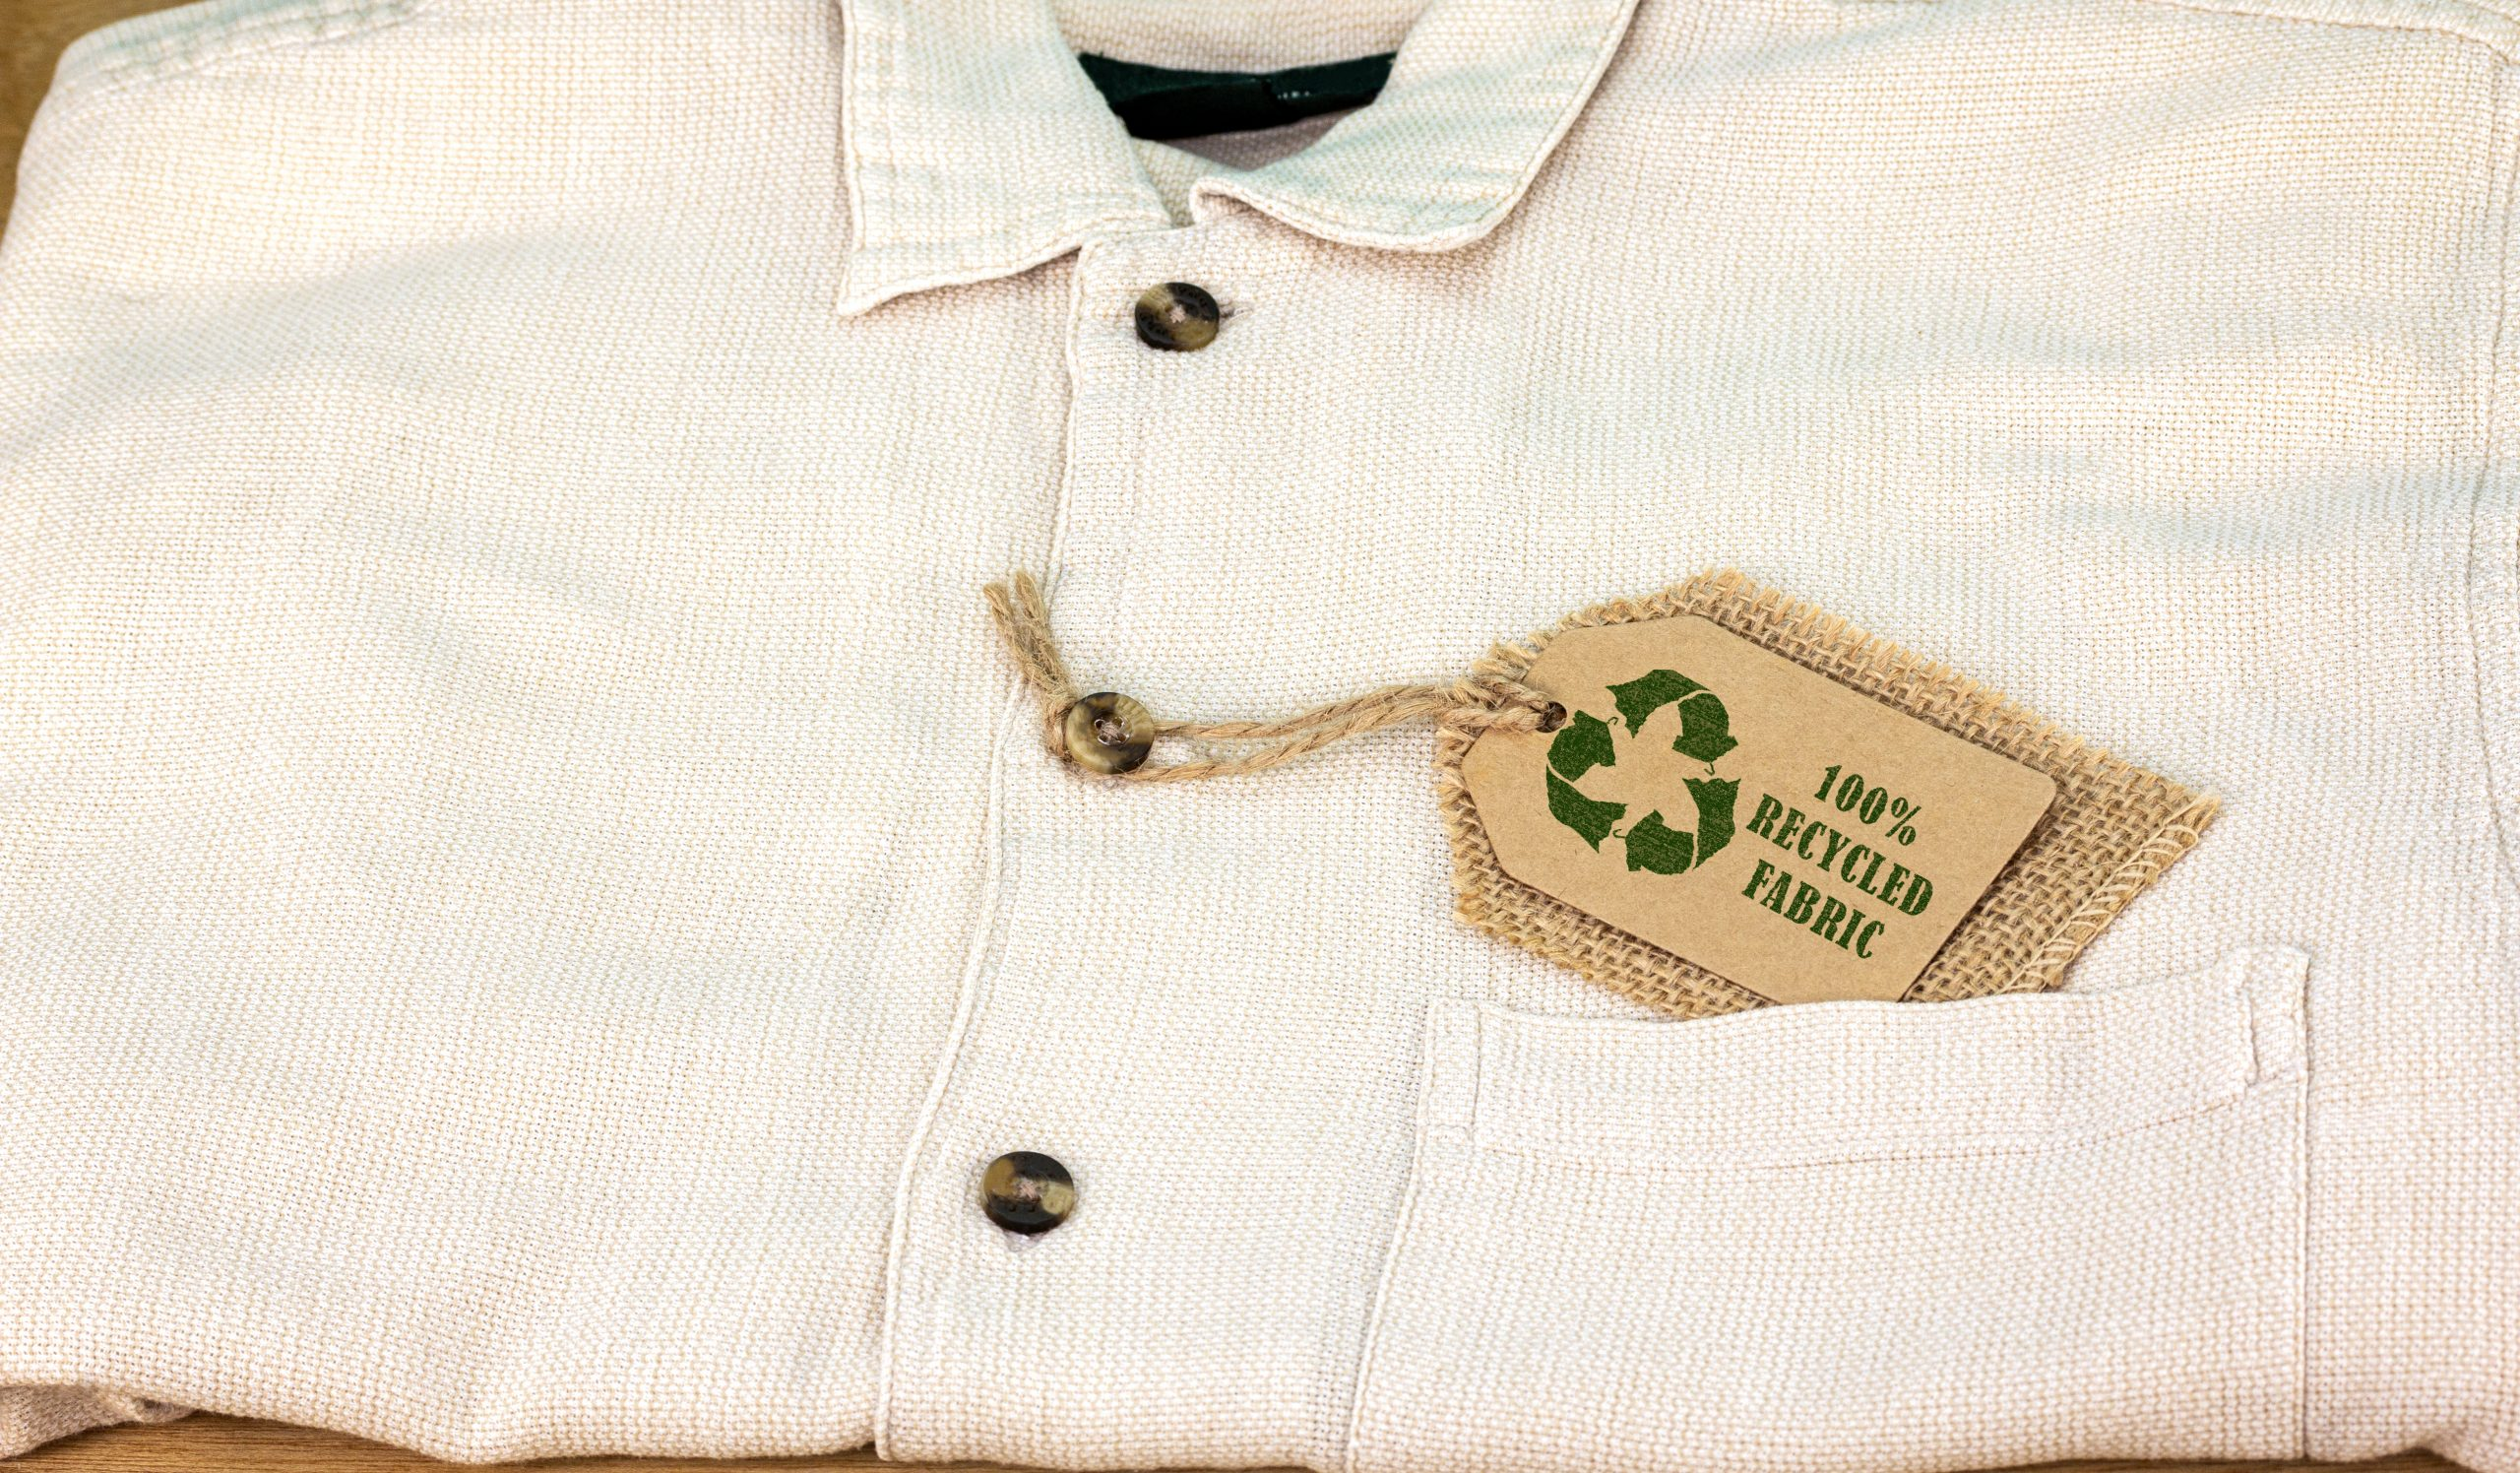 Sustainable fashion recycled clothes